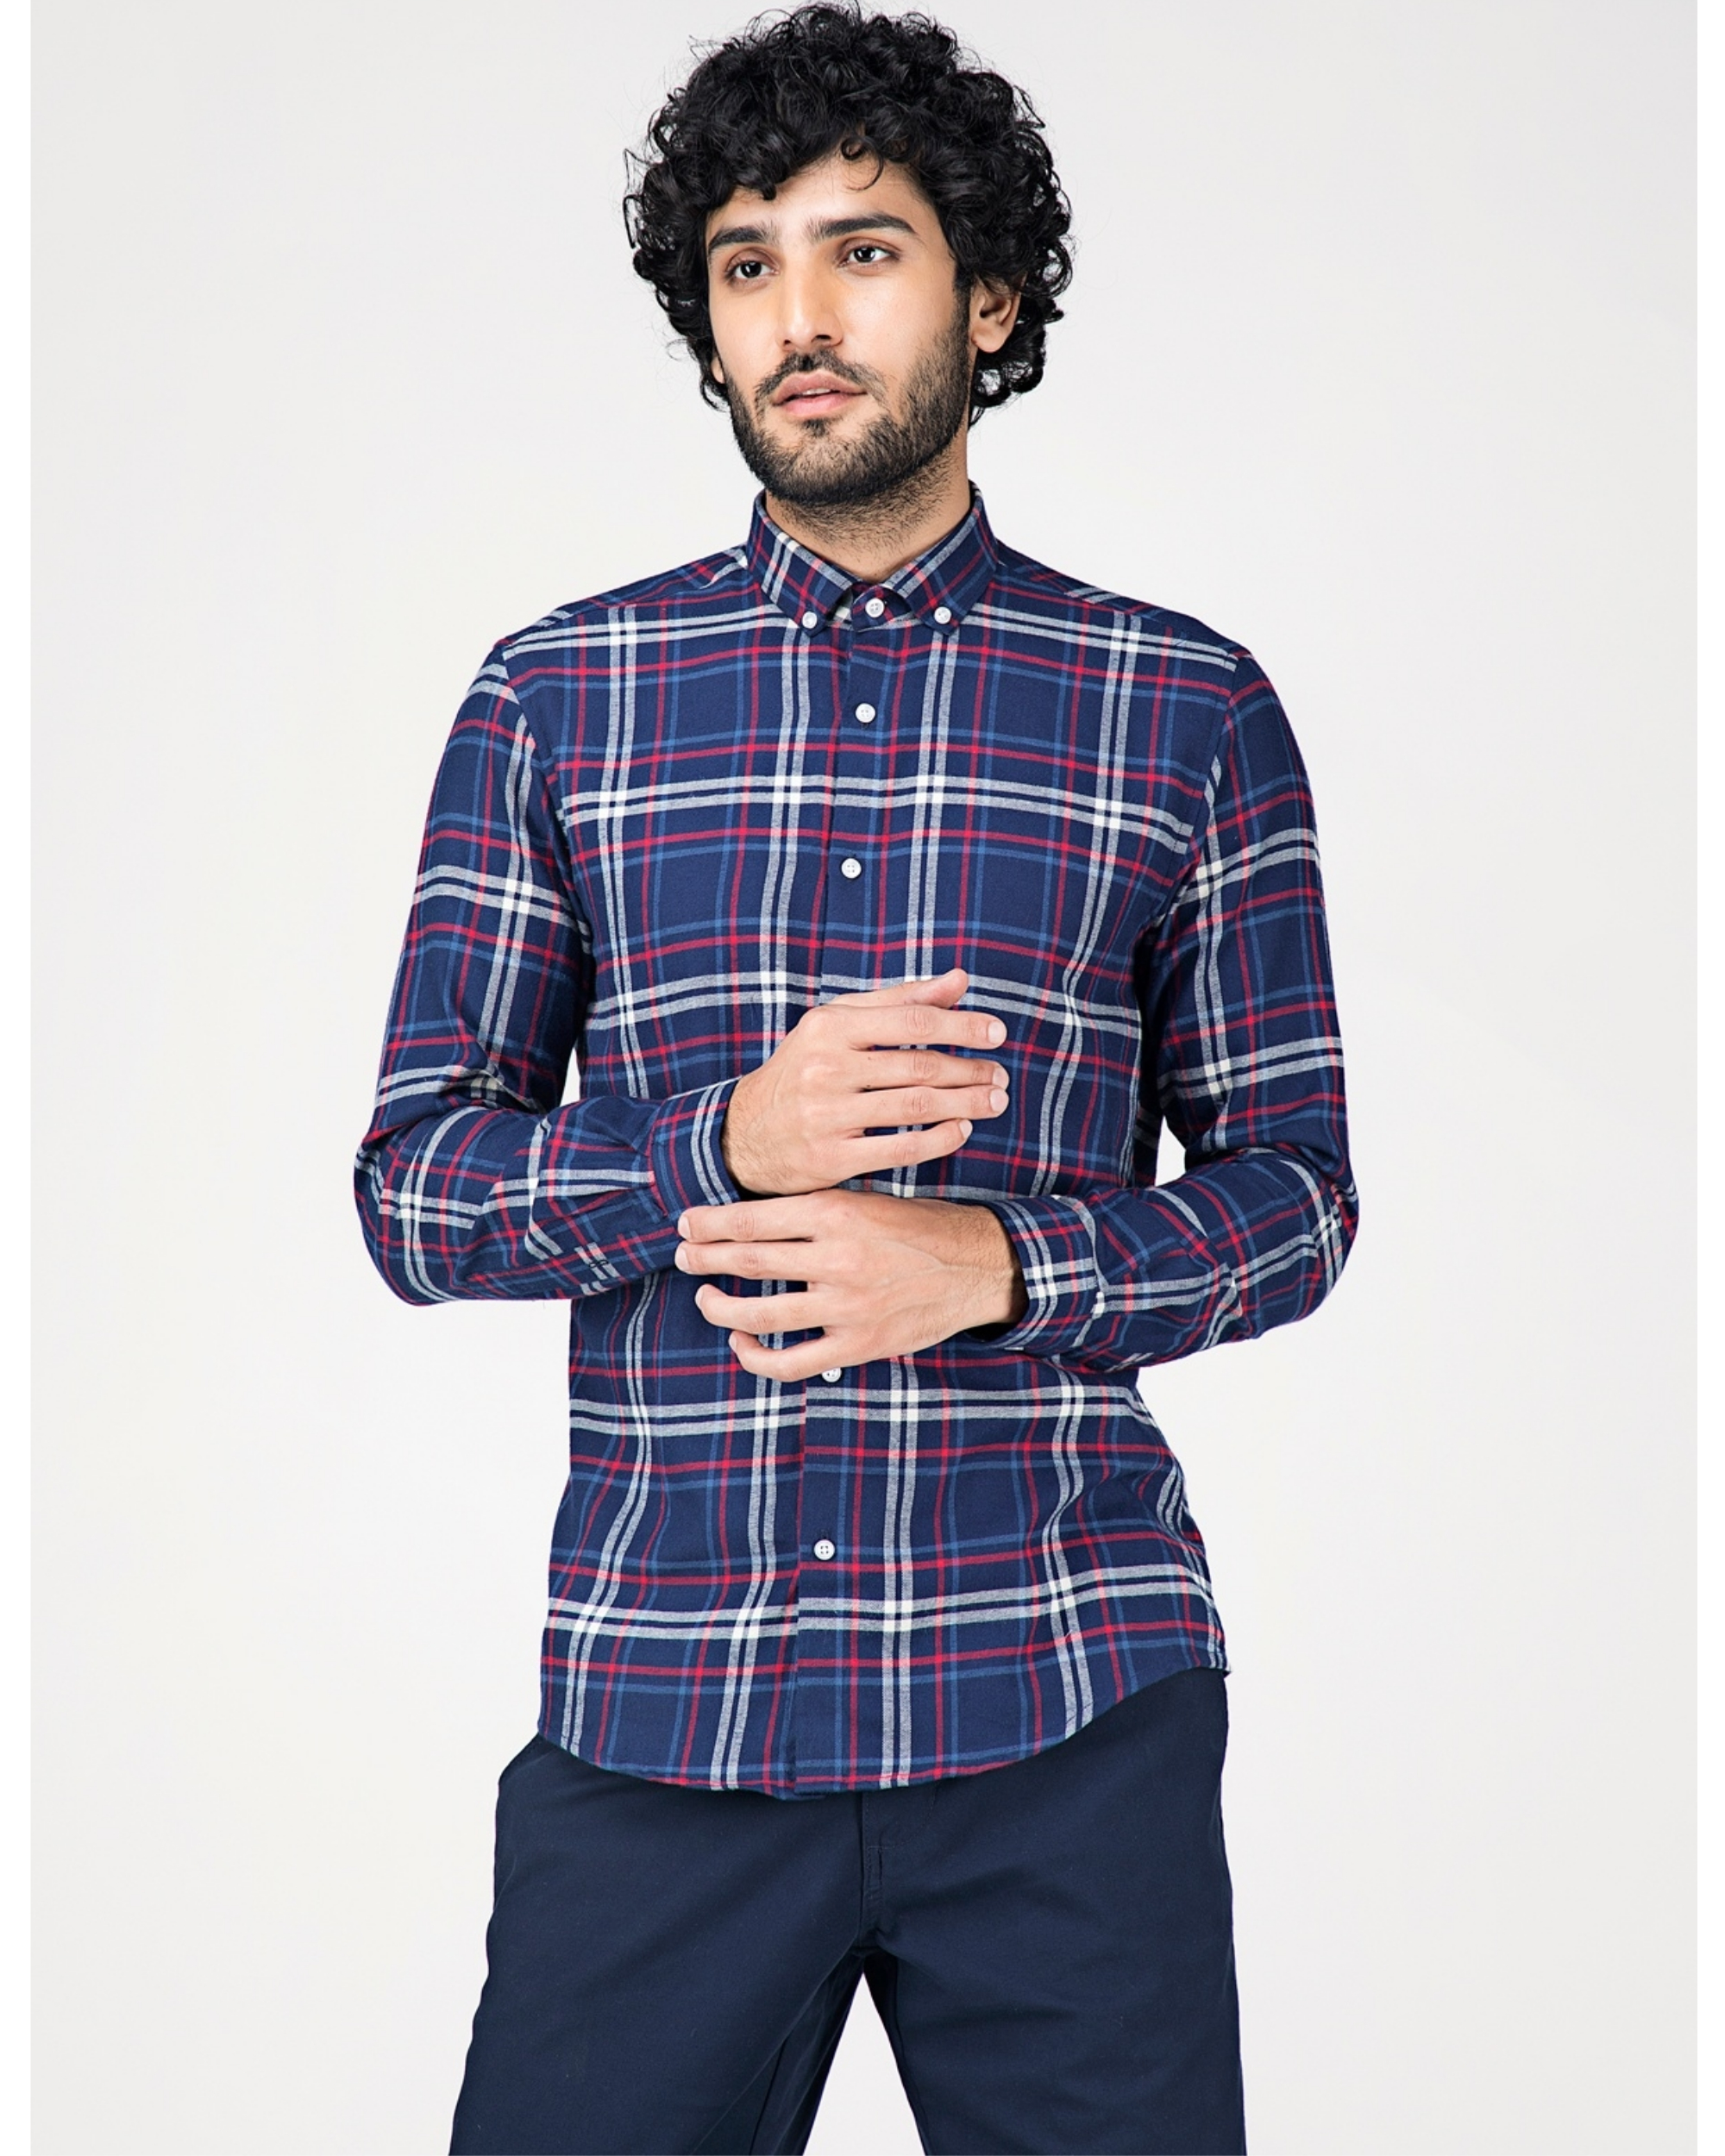 Blue and white tartan checkered shirt